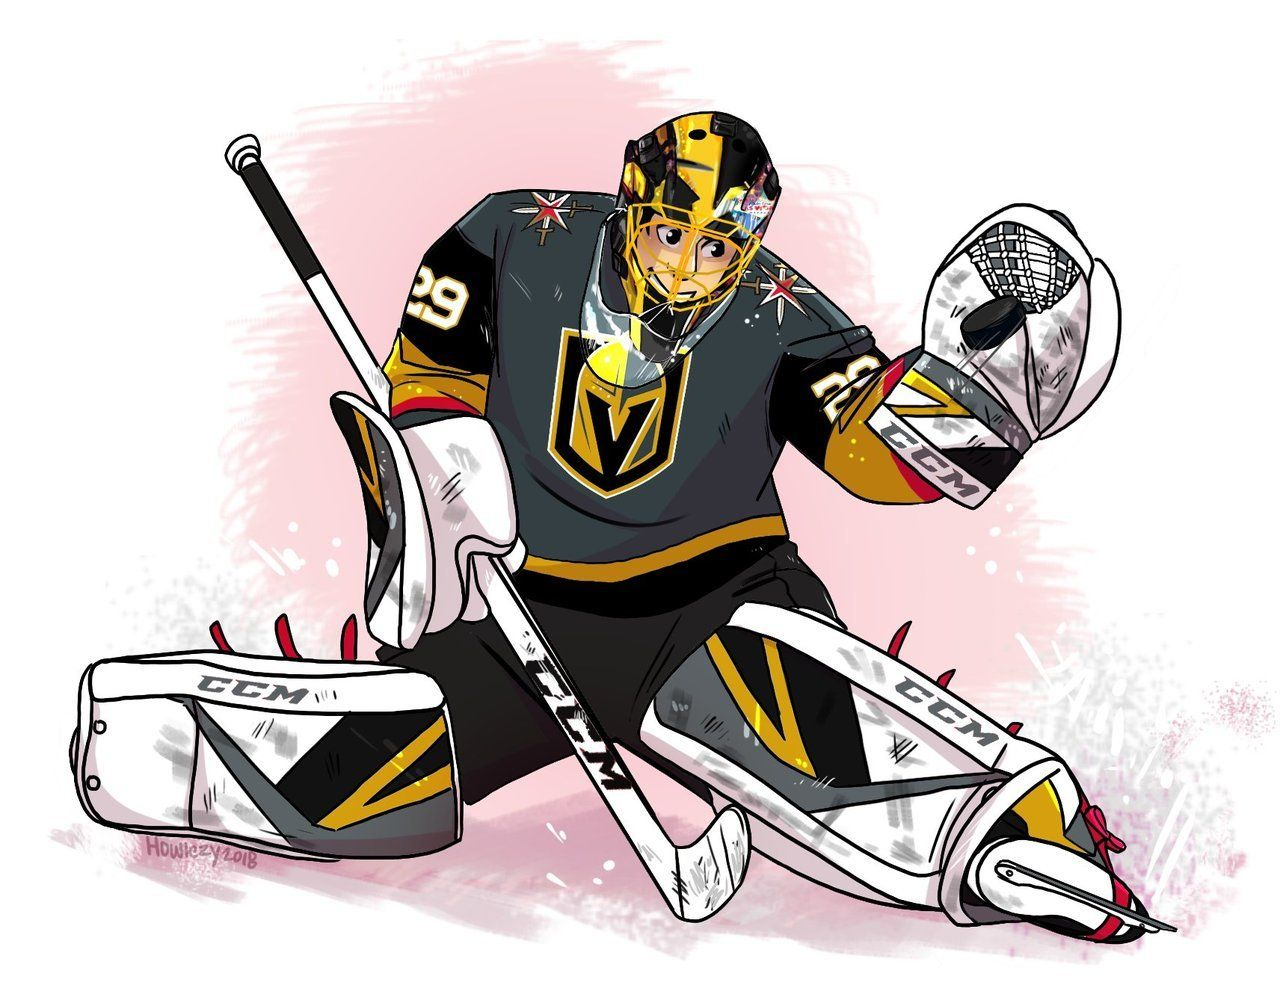 Pin By Buddy Hobbs On Art Golden Knights Hockey Vegas Golden Knights Golden Knights